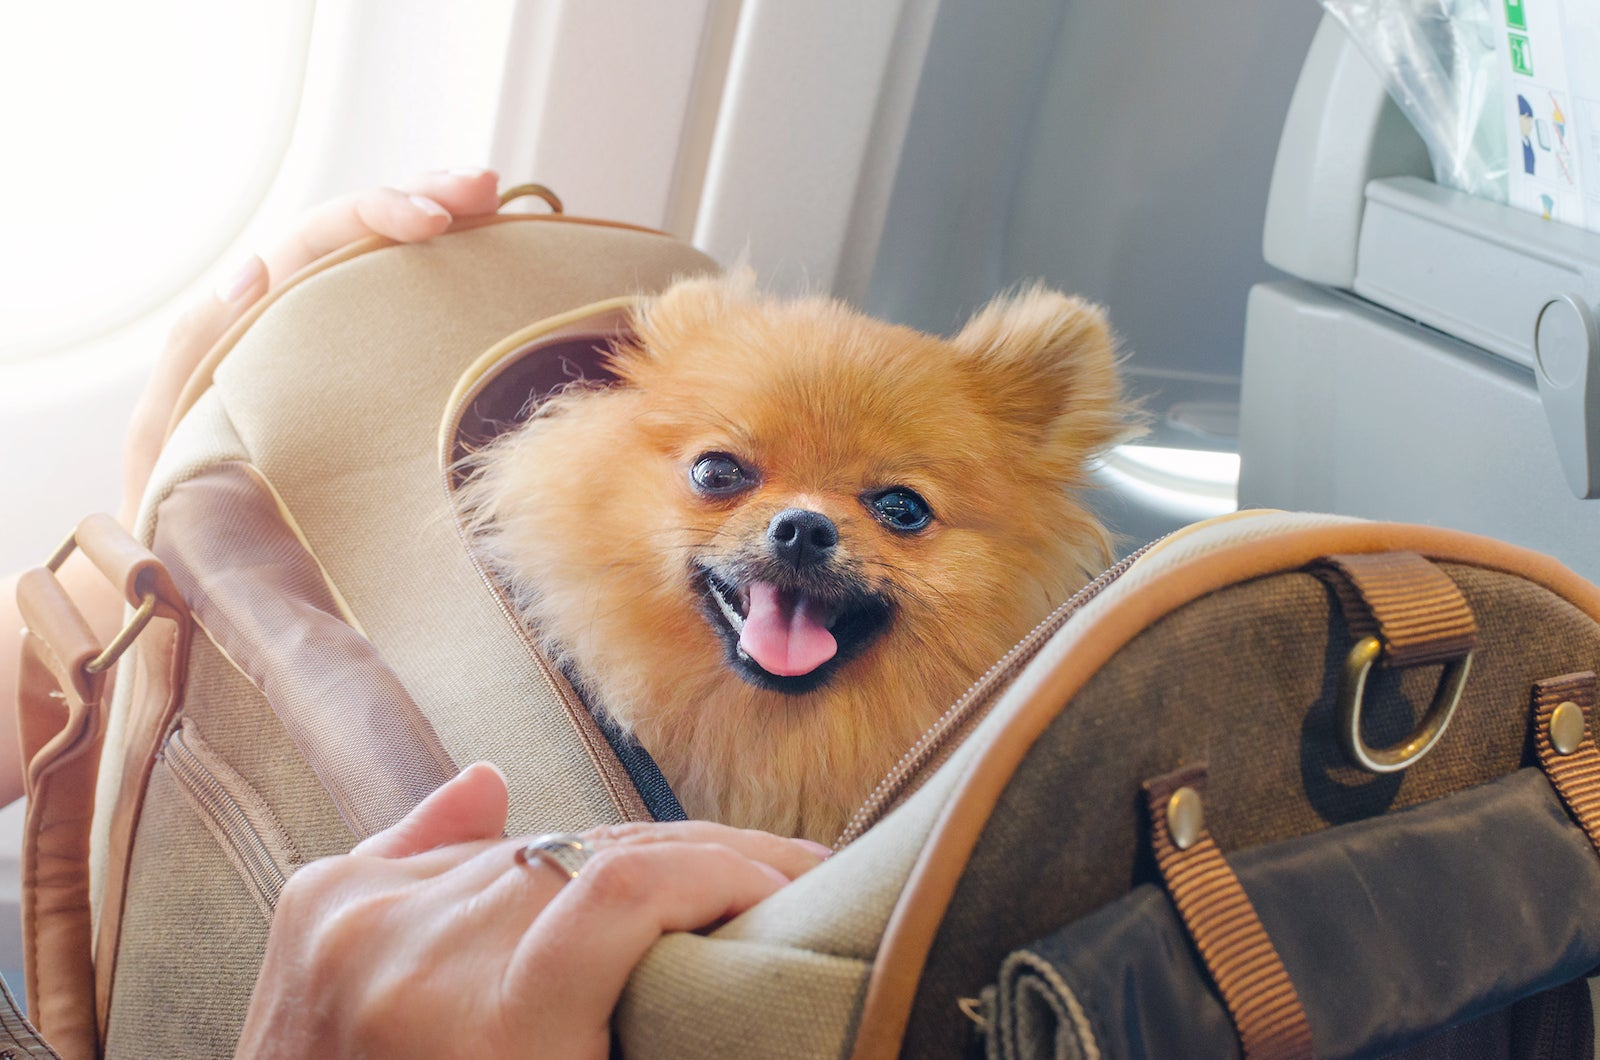 Flying with an emotional support animal (ESA): What you need to know